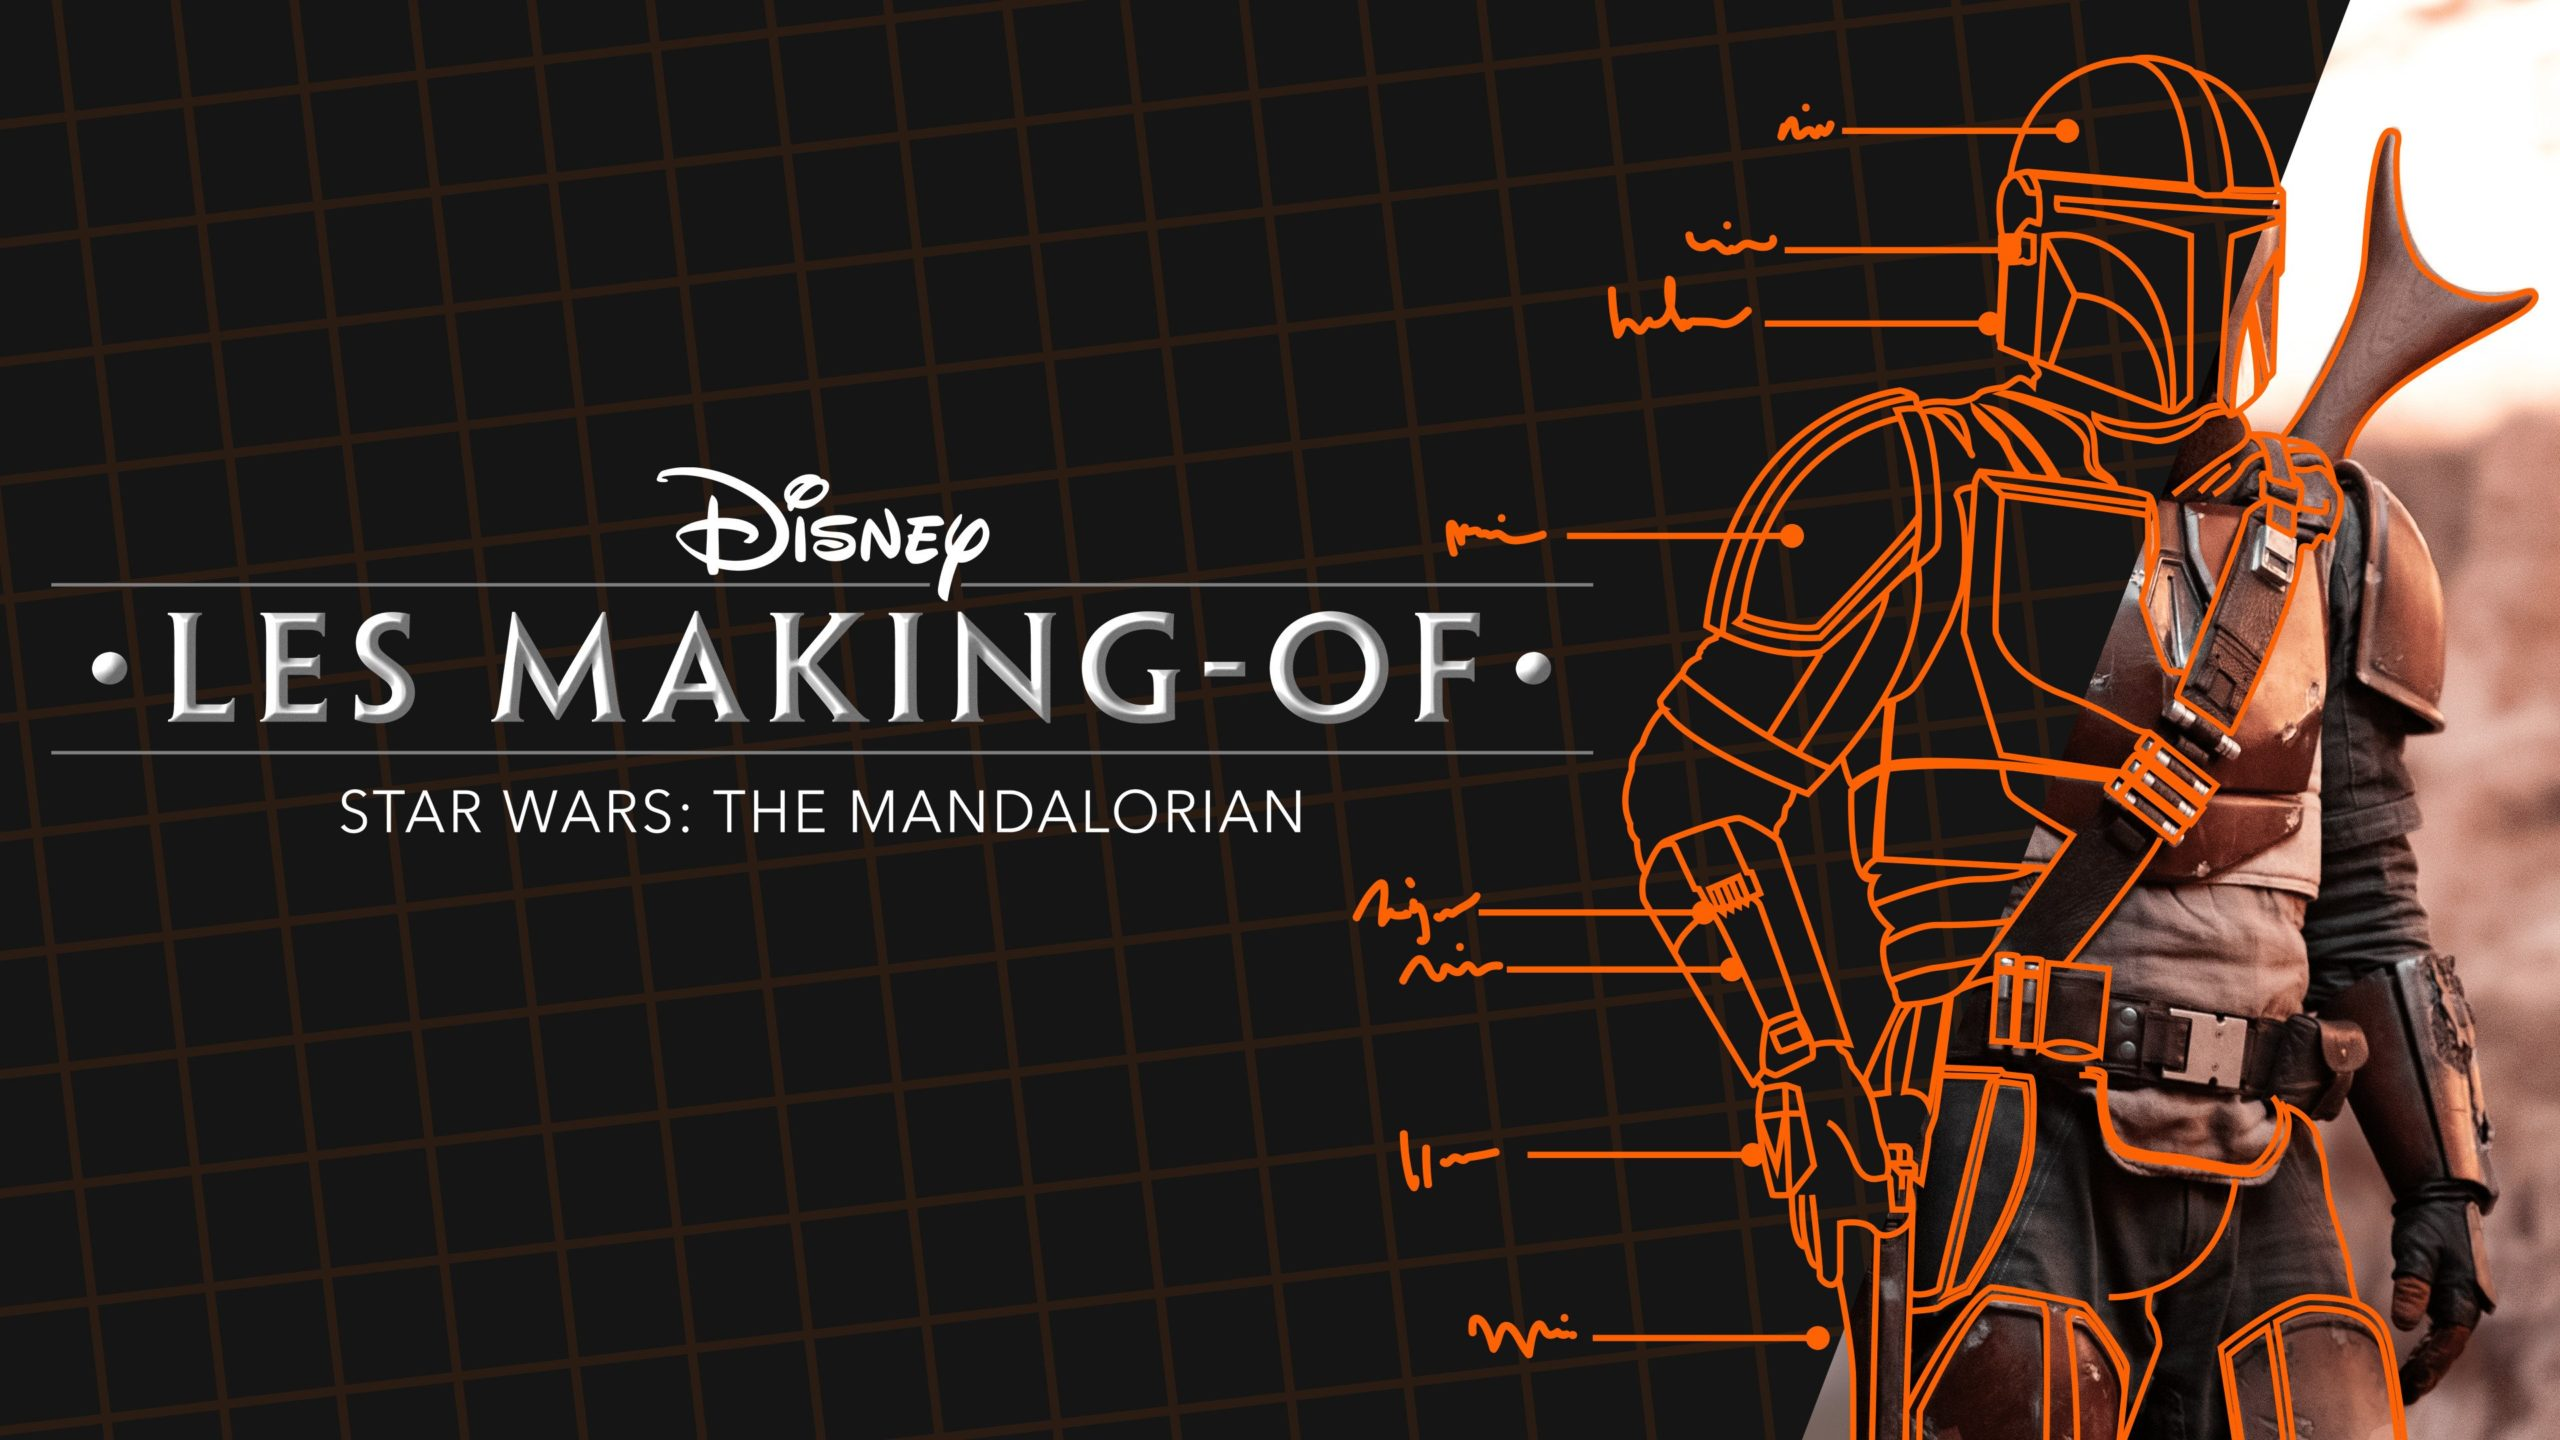 Bannière de la série documentaire Disney+, Les making-of – Star Wars : The Mandalorian